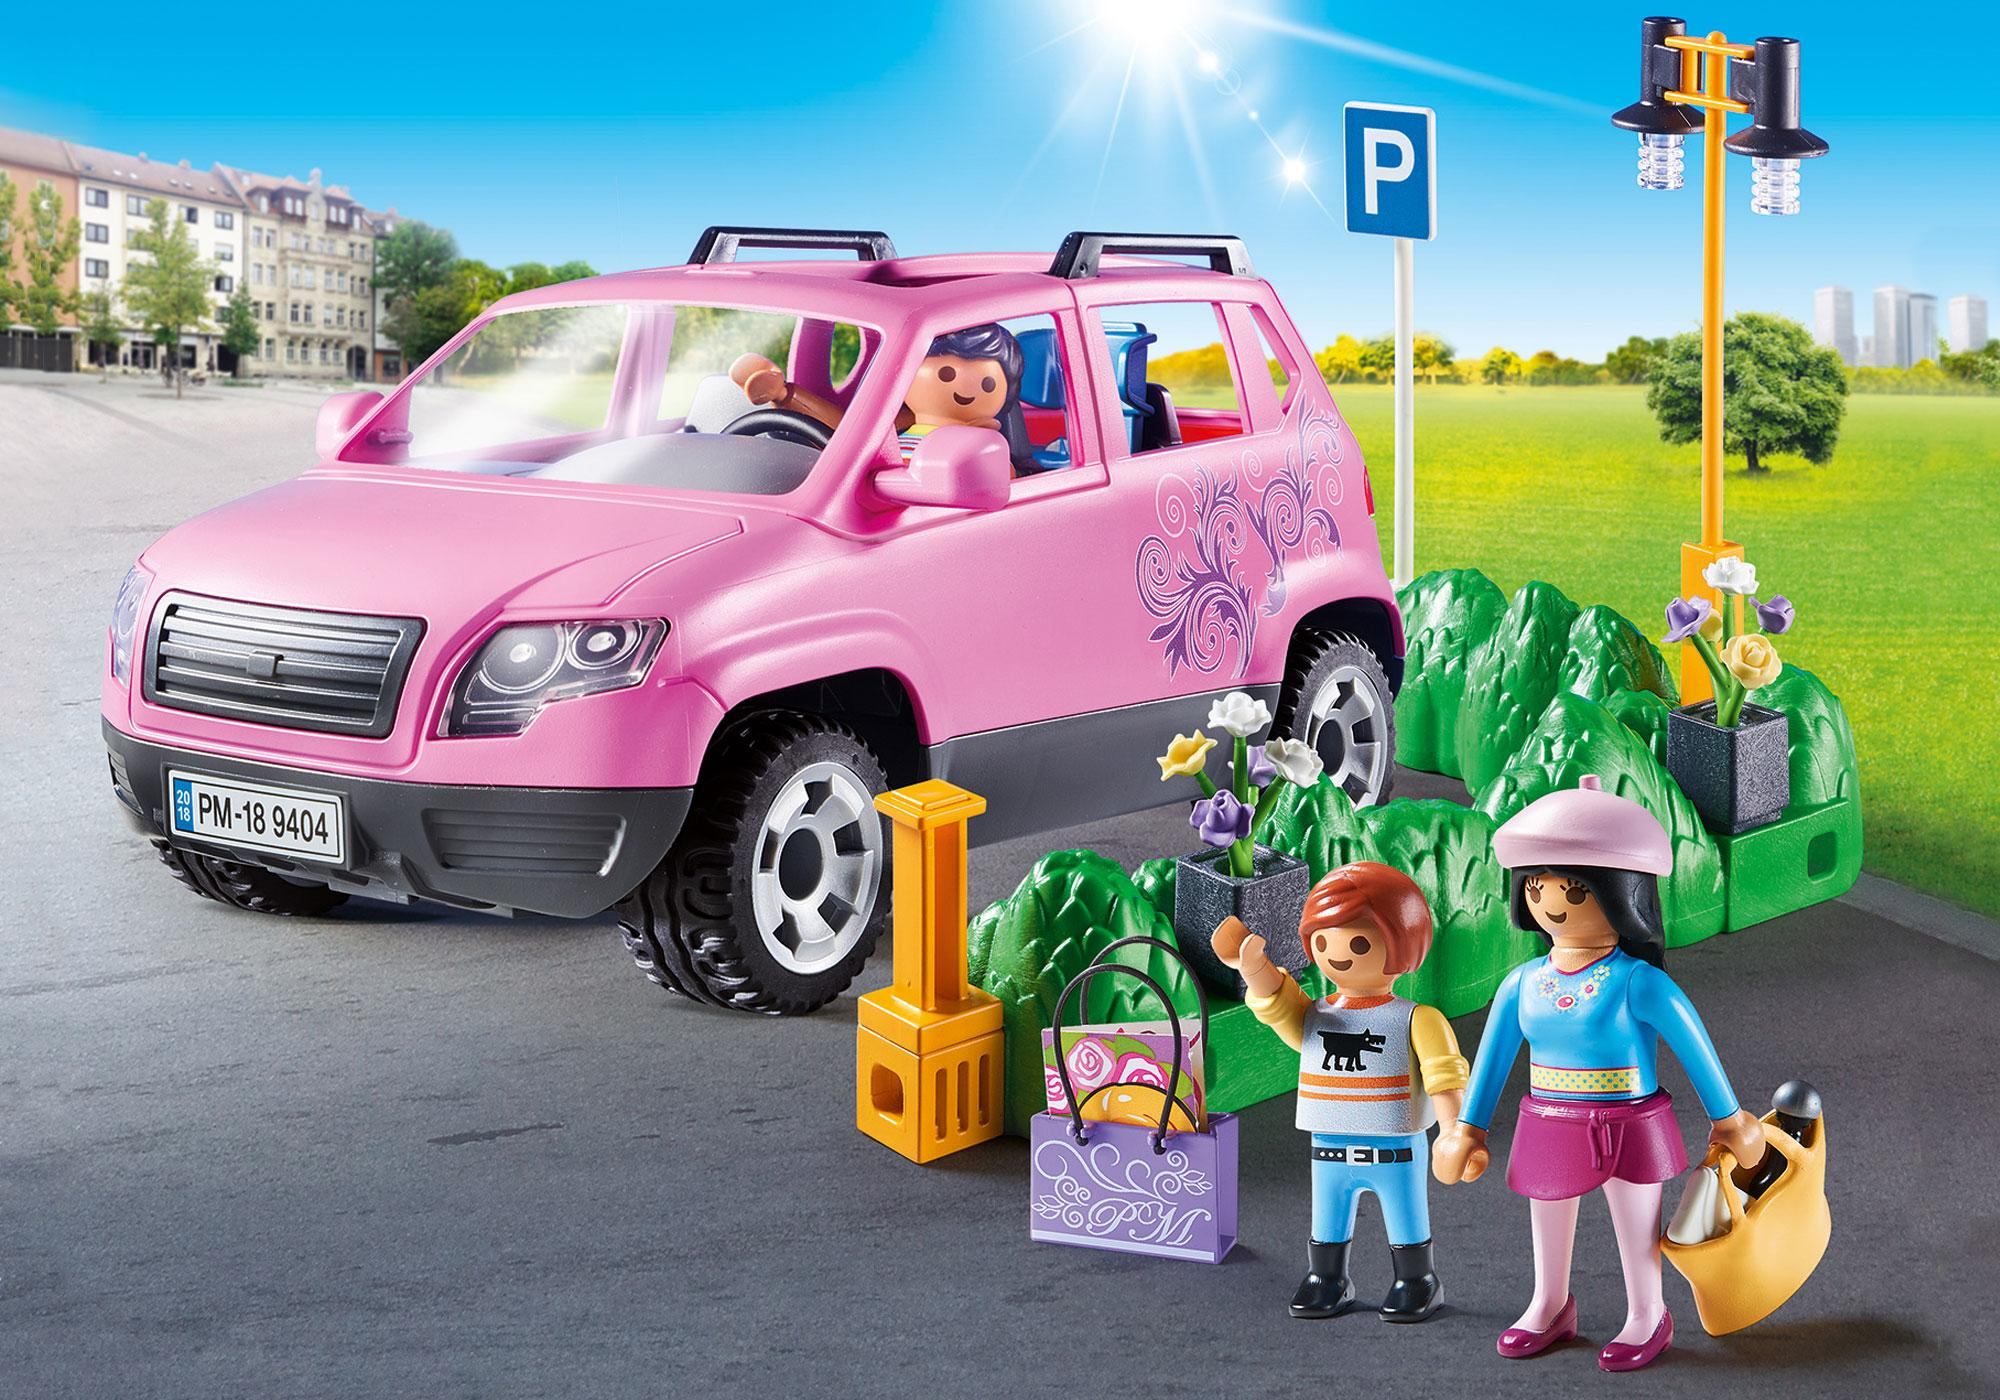 http://media.playmobil.com/i/playmobil/9404_product_detail/Voiture familiale